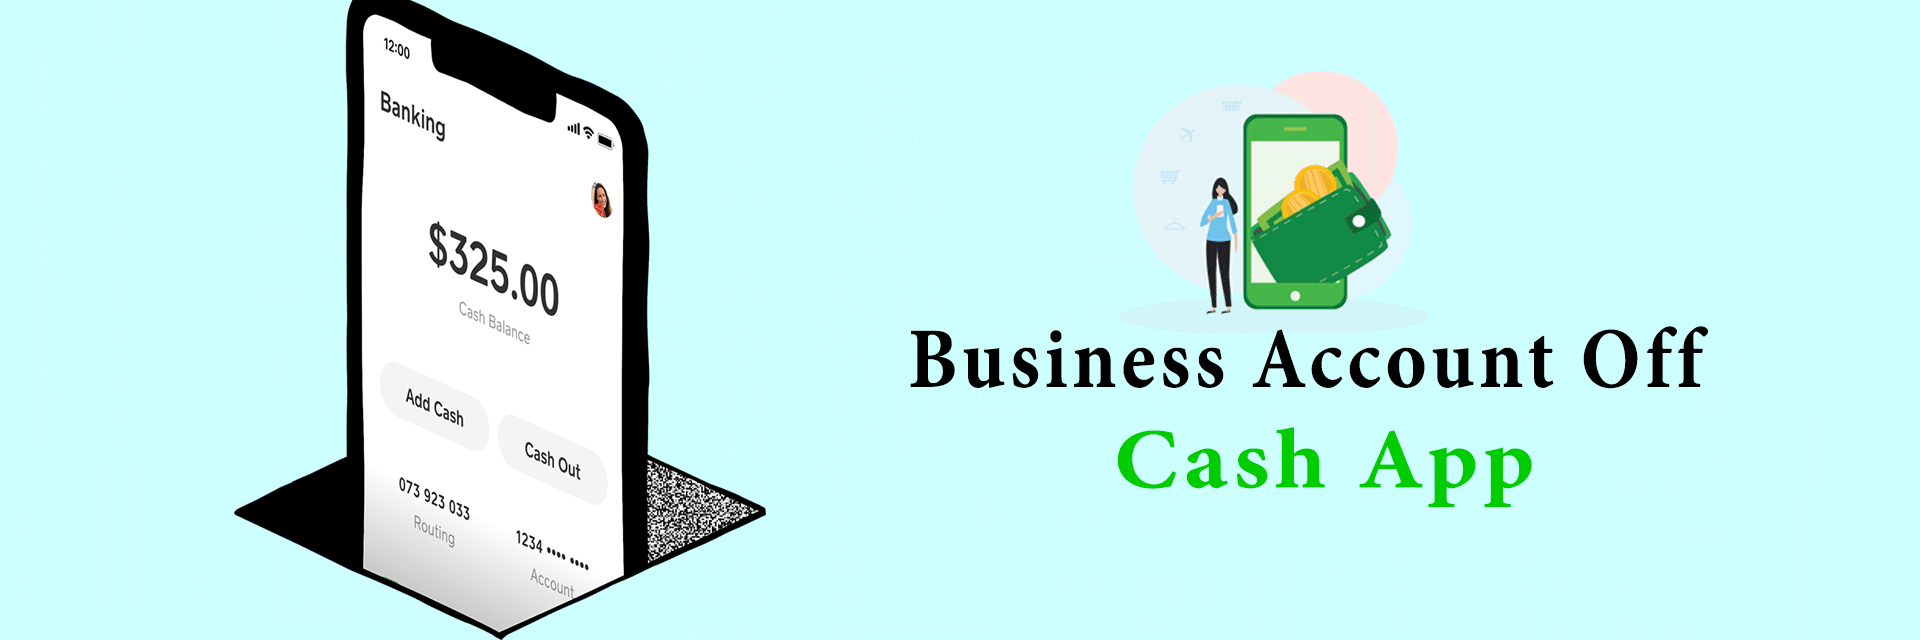 Cash App Business Account